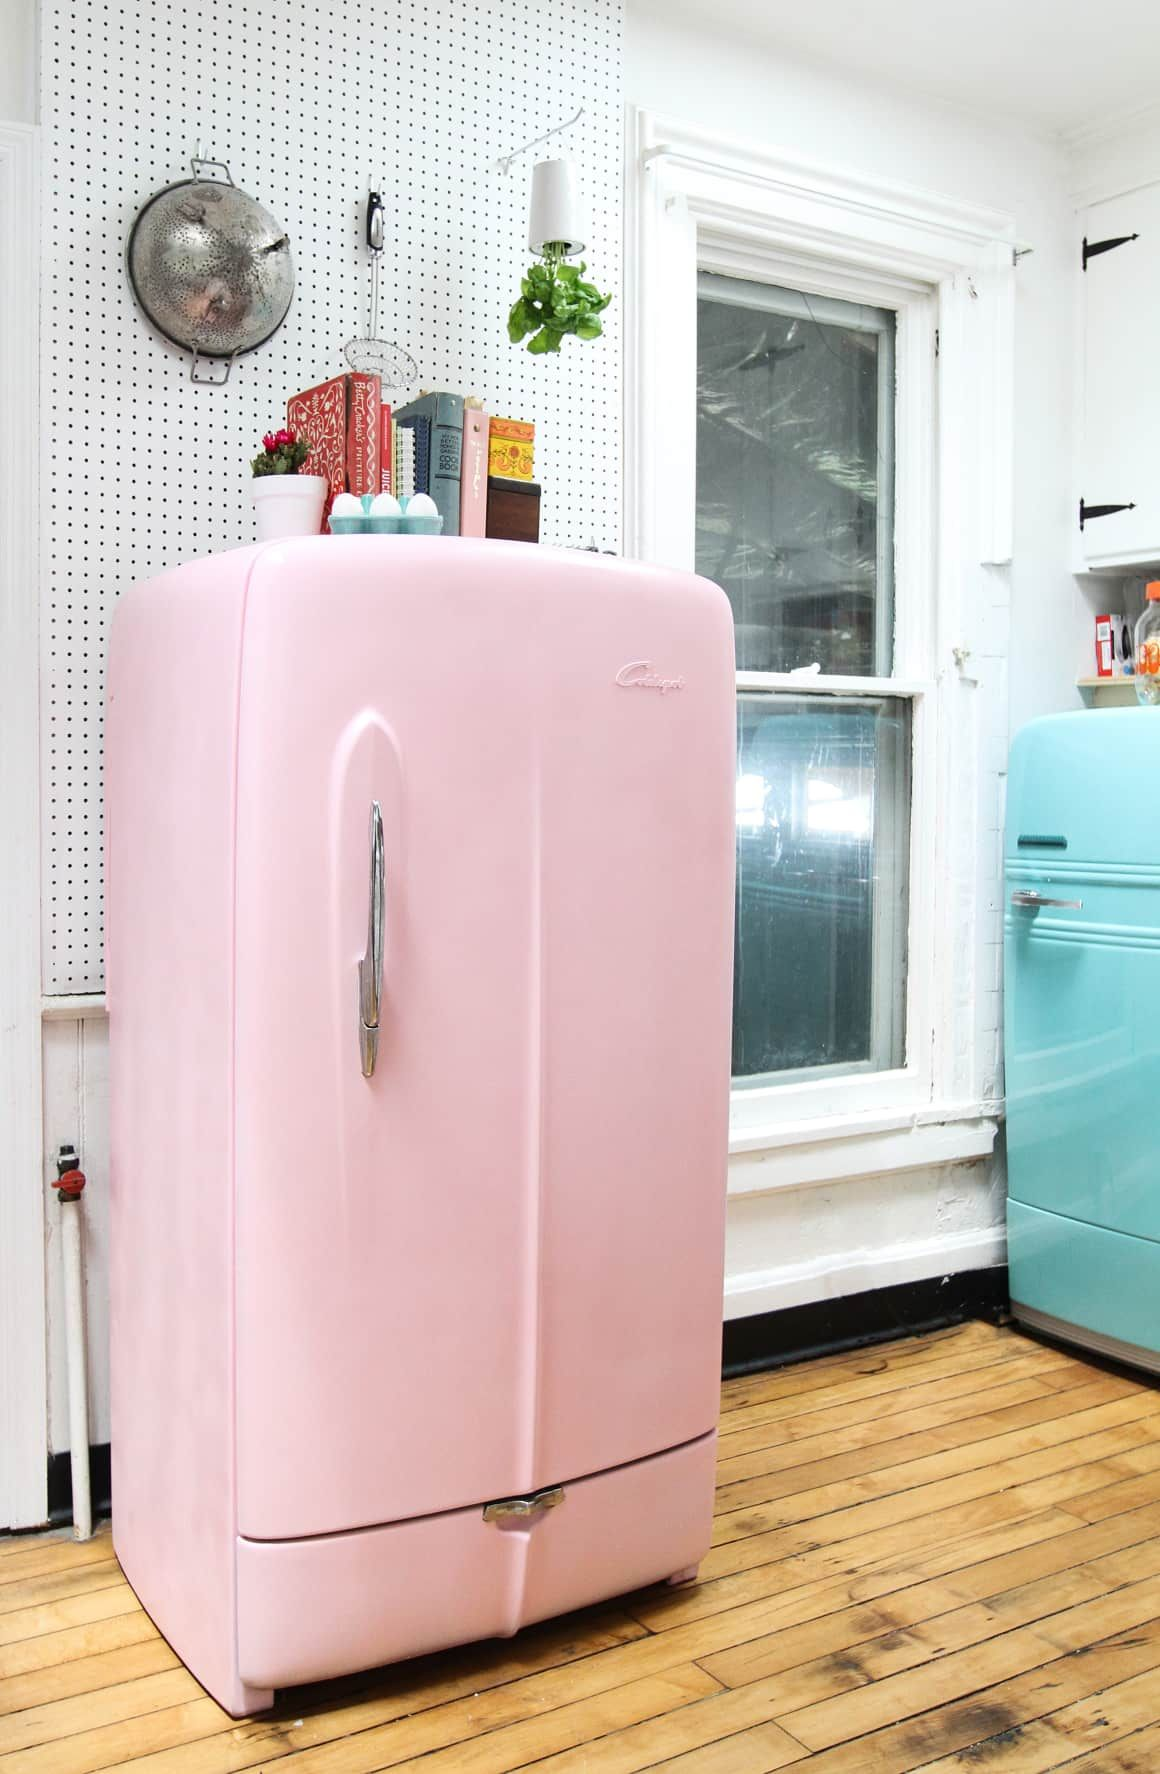 8 Smart And Inexpensive Ways To Make Cheap Appliances Look So